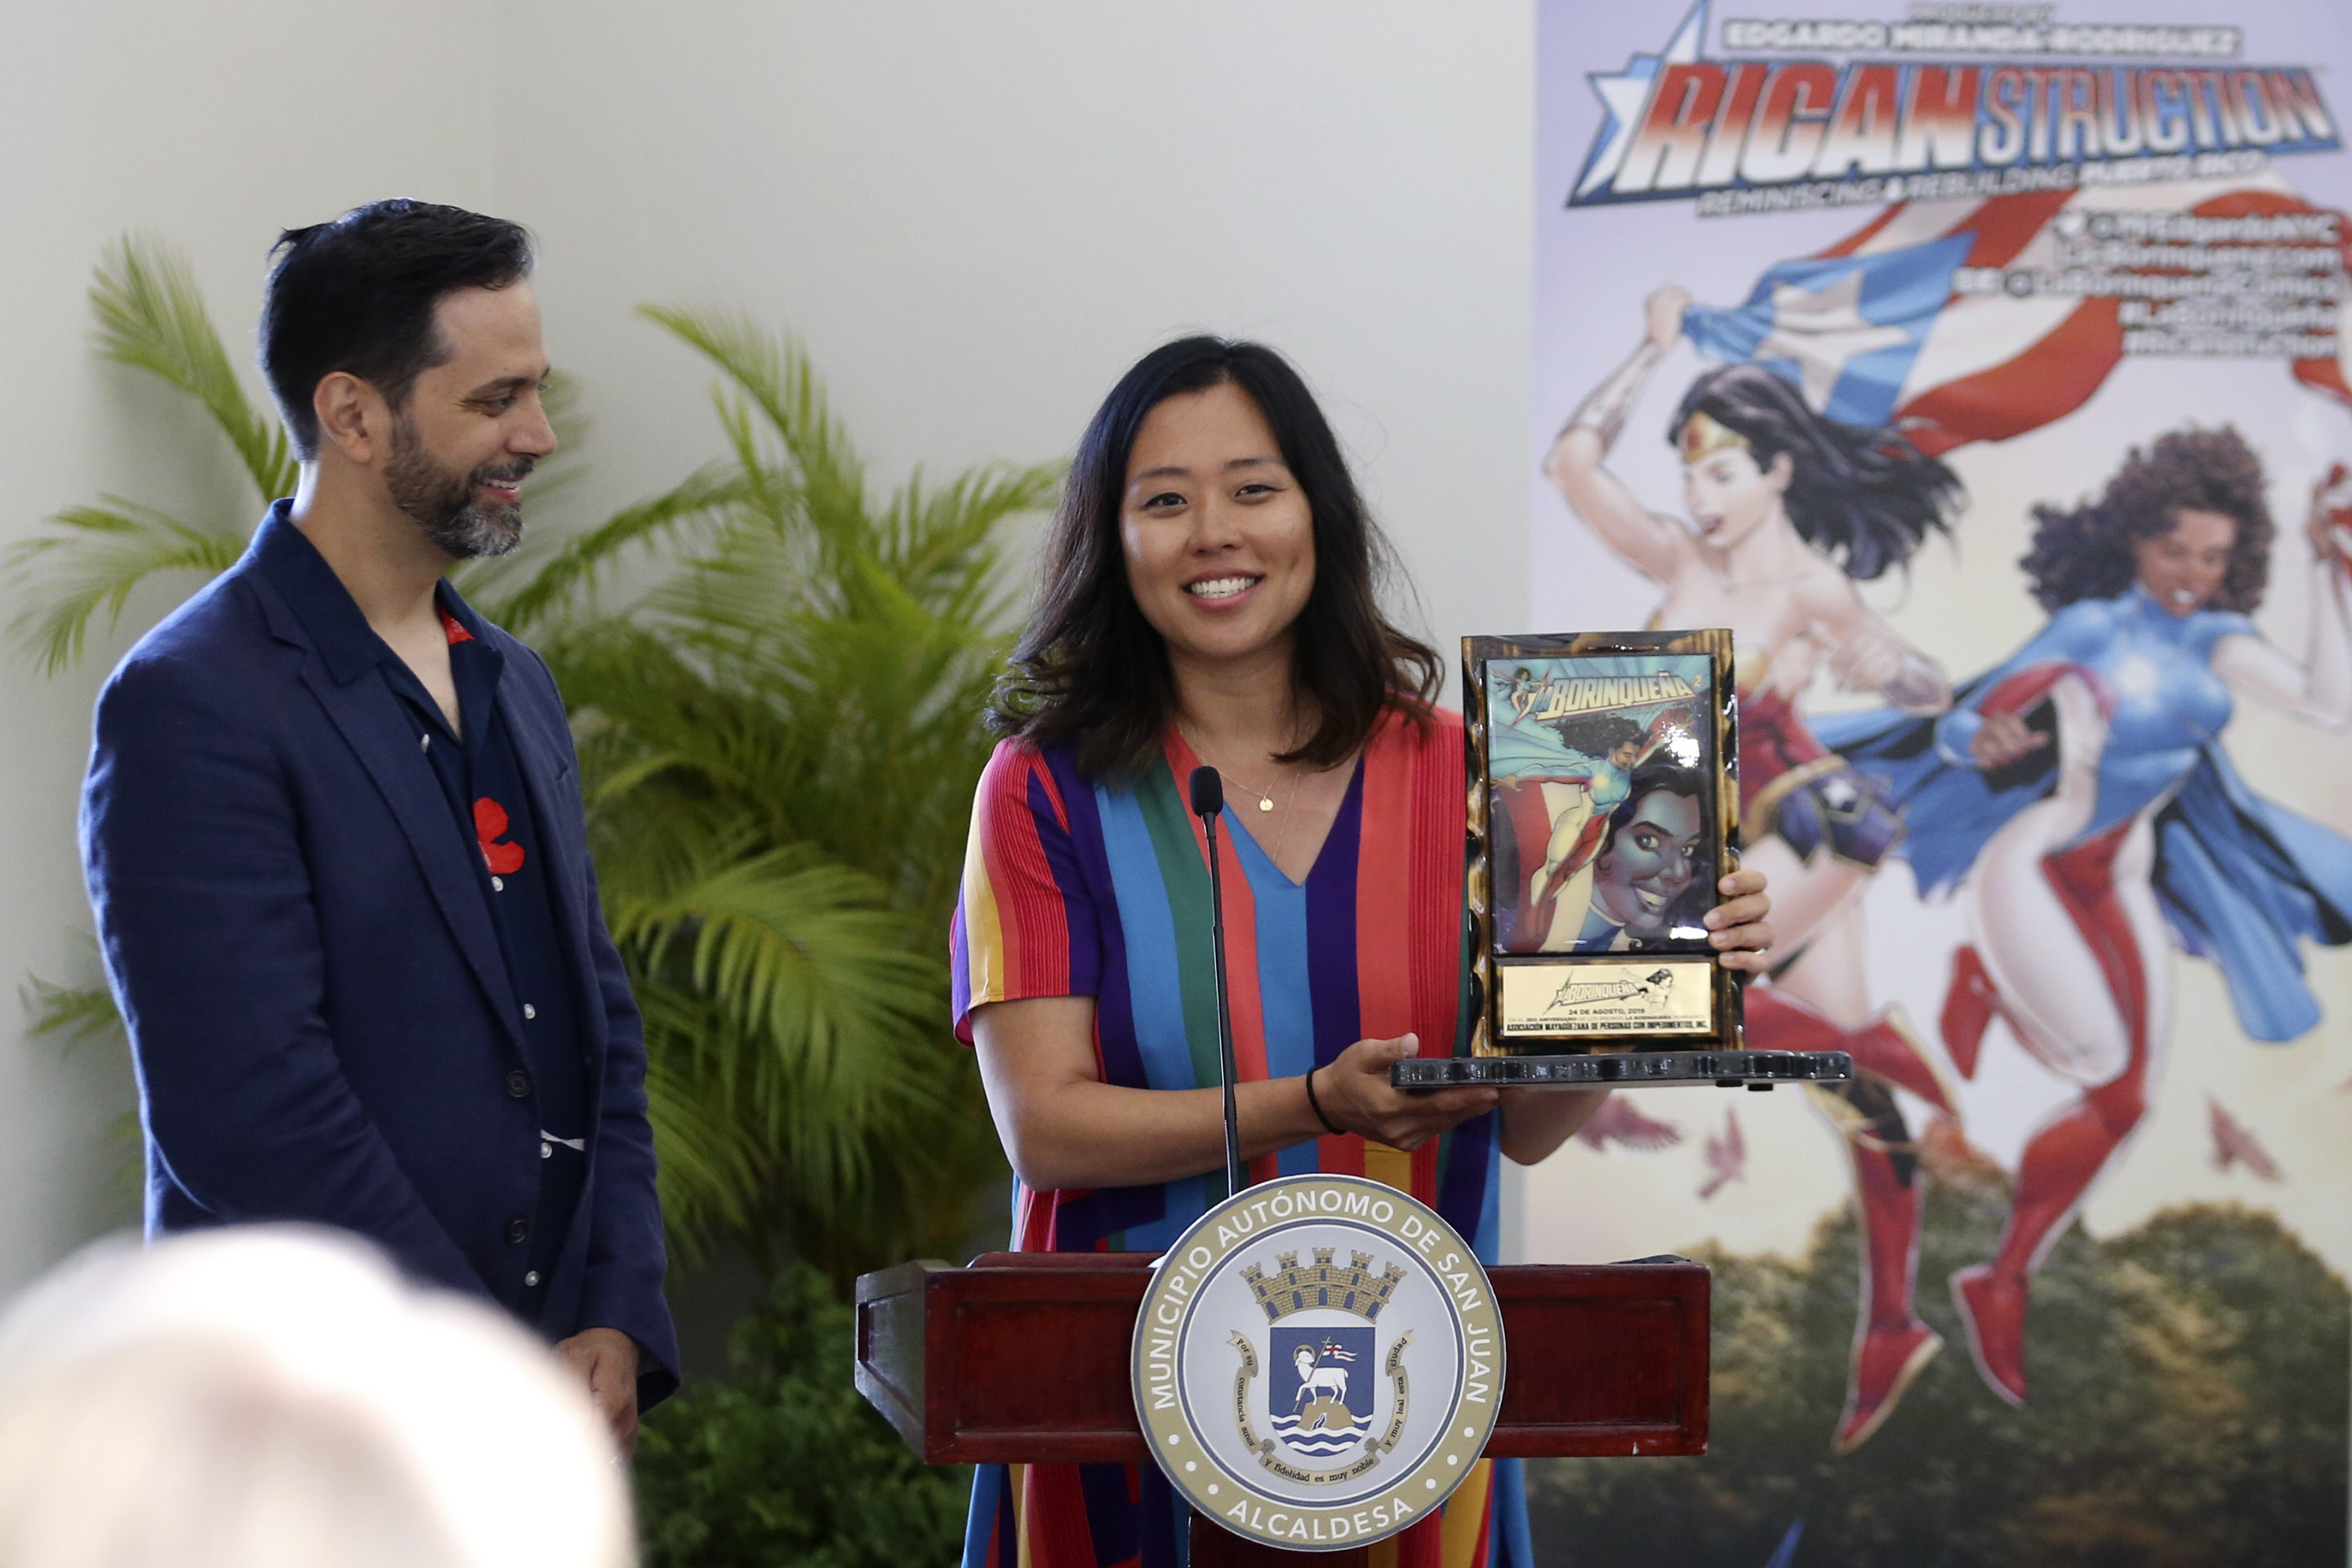 Kyung Jeon-Miranda presents the 2019 La Borinqueña Grant